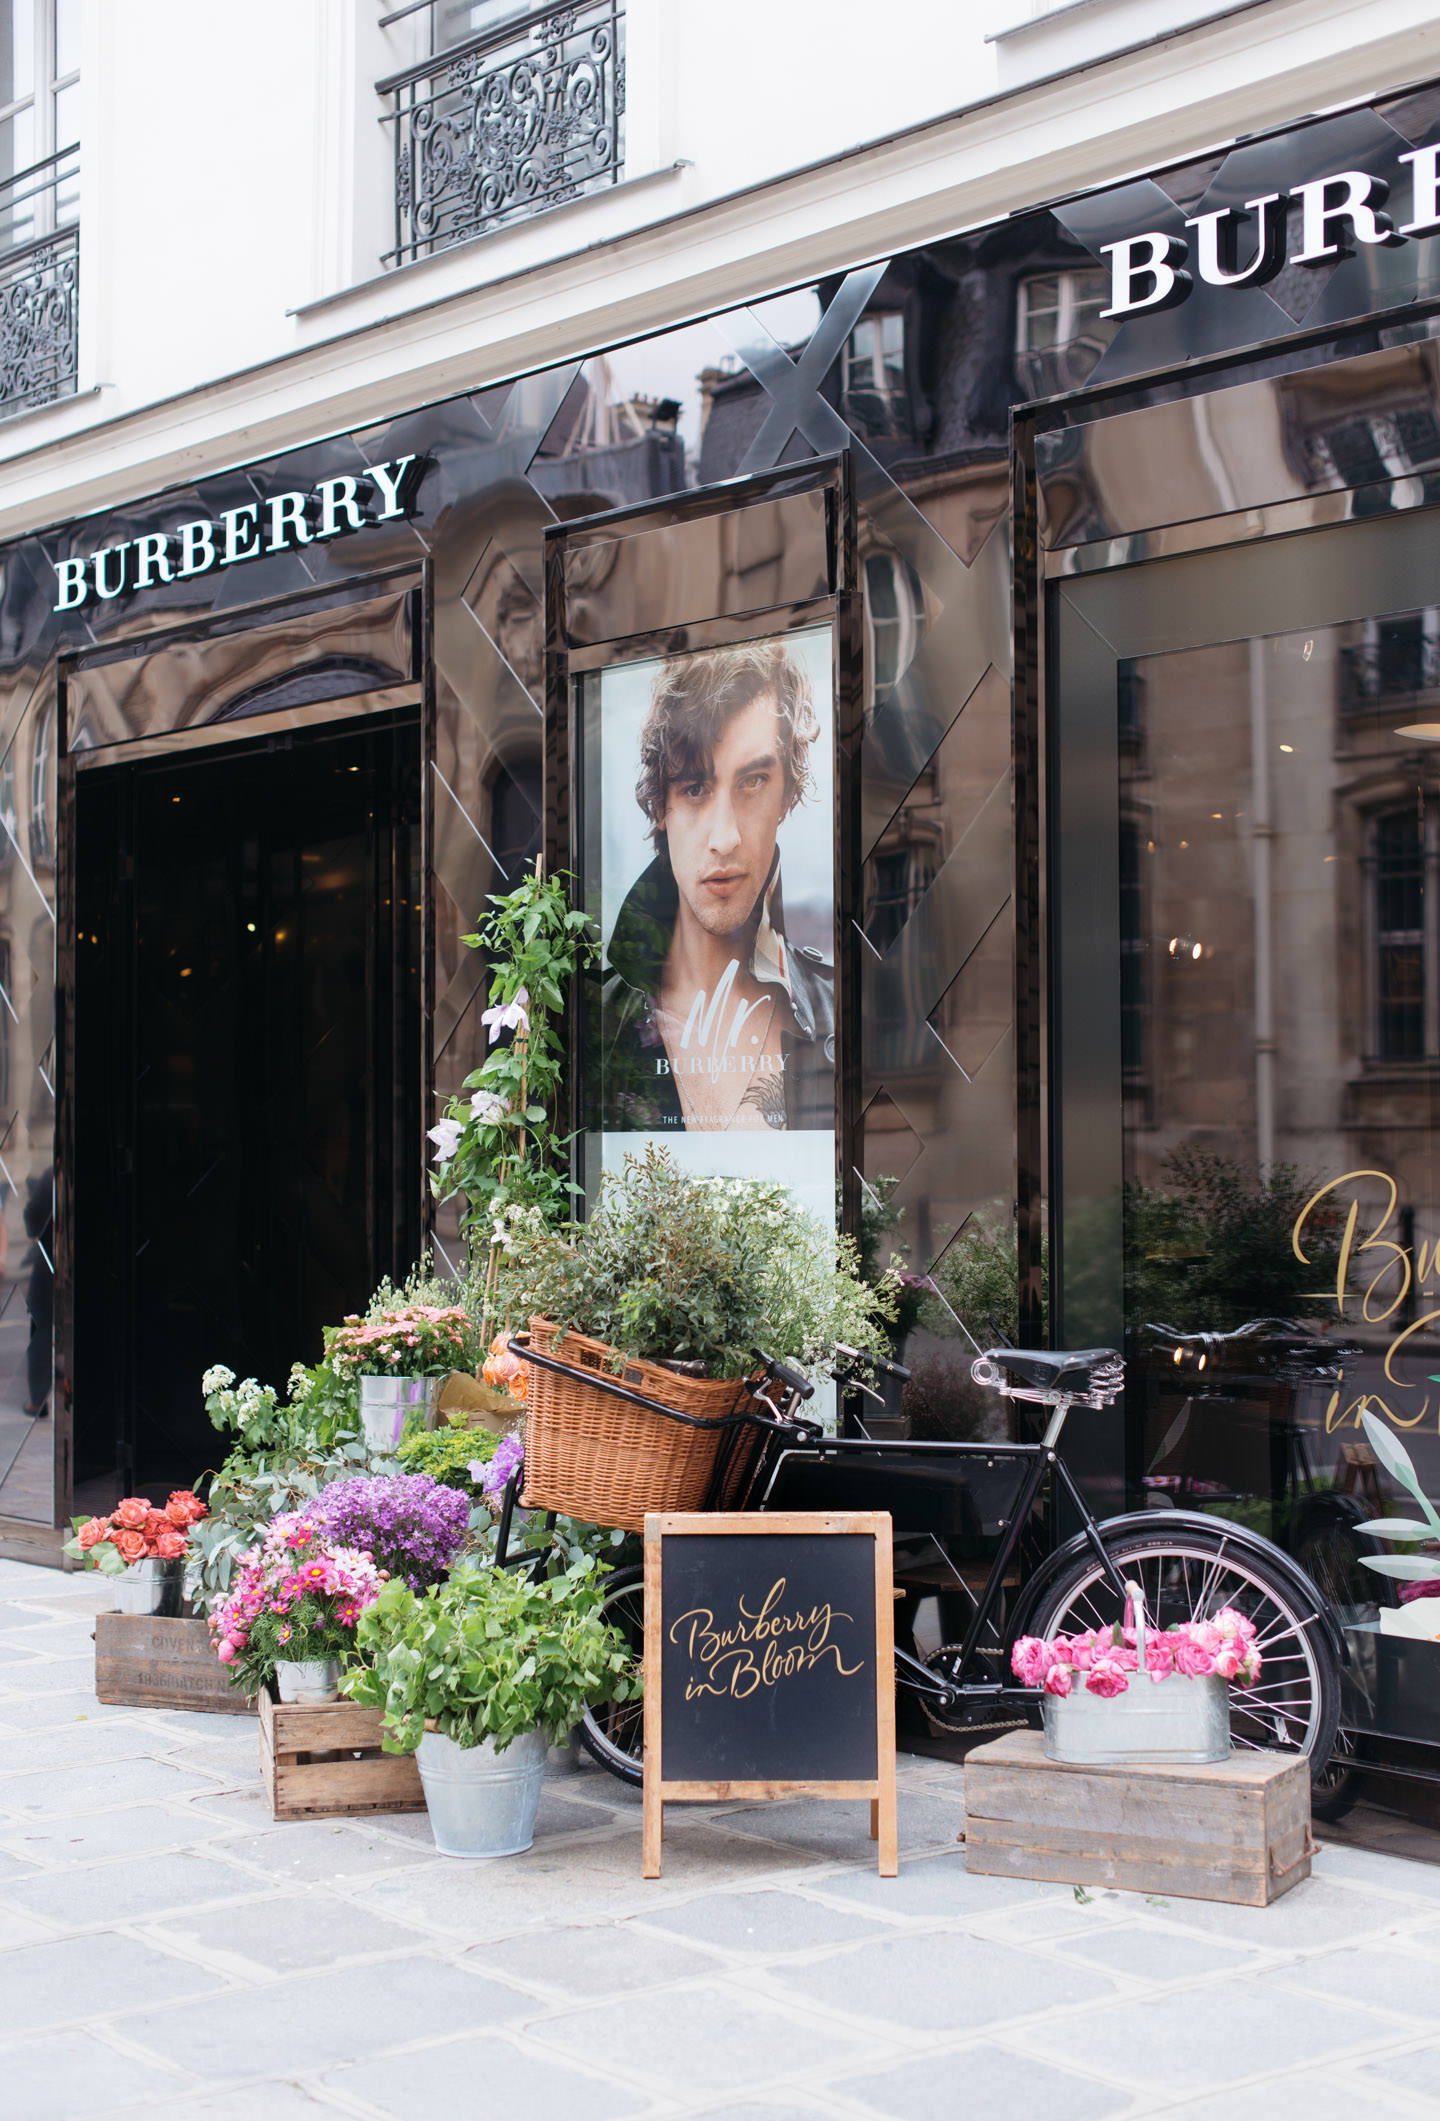 Blog-mode-and-the-city-lifestyle-5-petites-choses-177-burebbety-bloom-paris